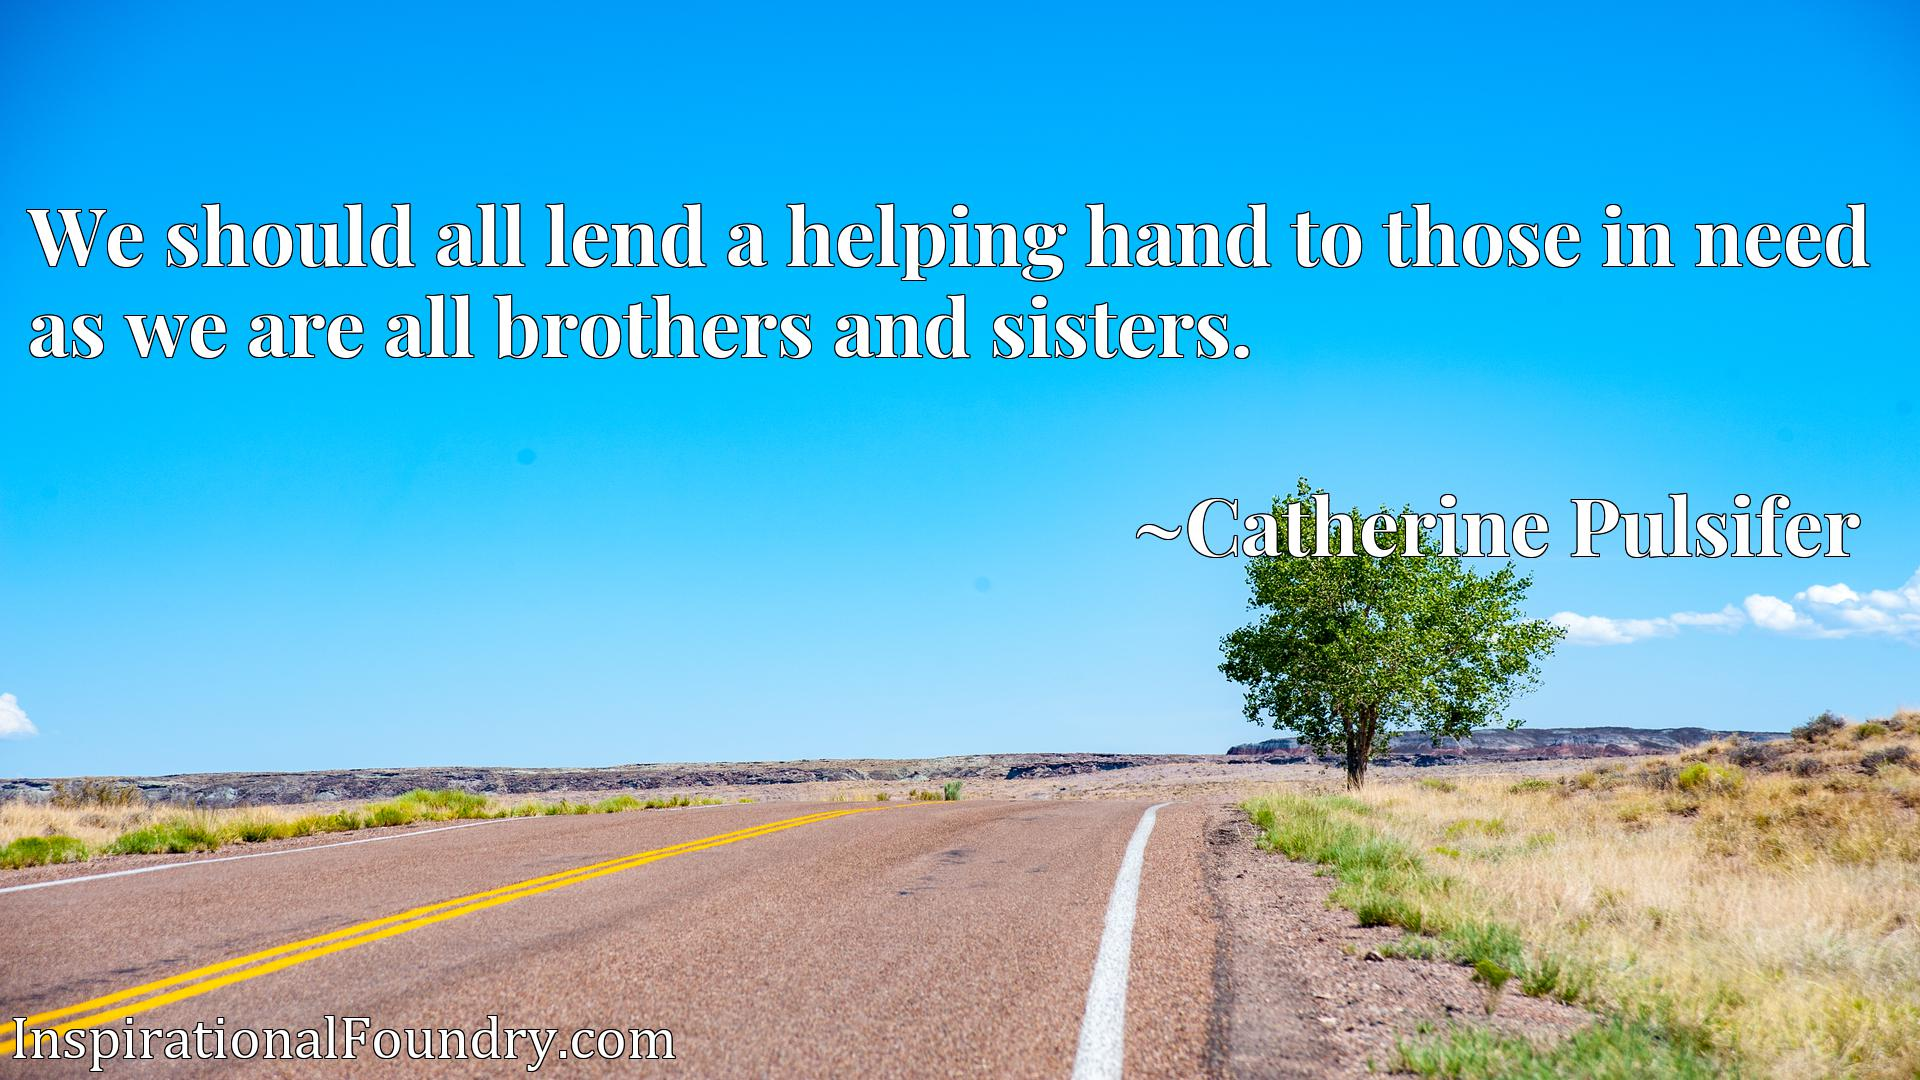 We should all lend a helping hand to those in need as we are all brothers and sisters.